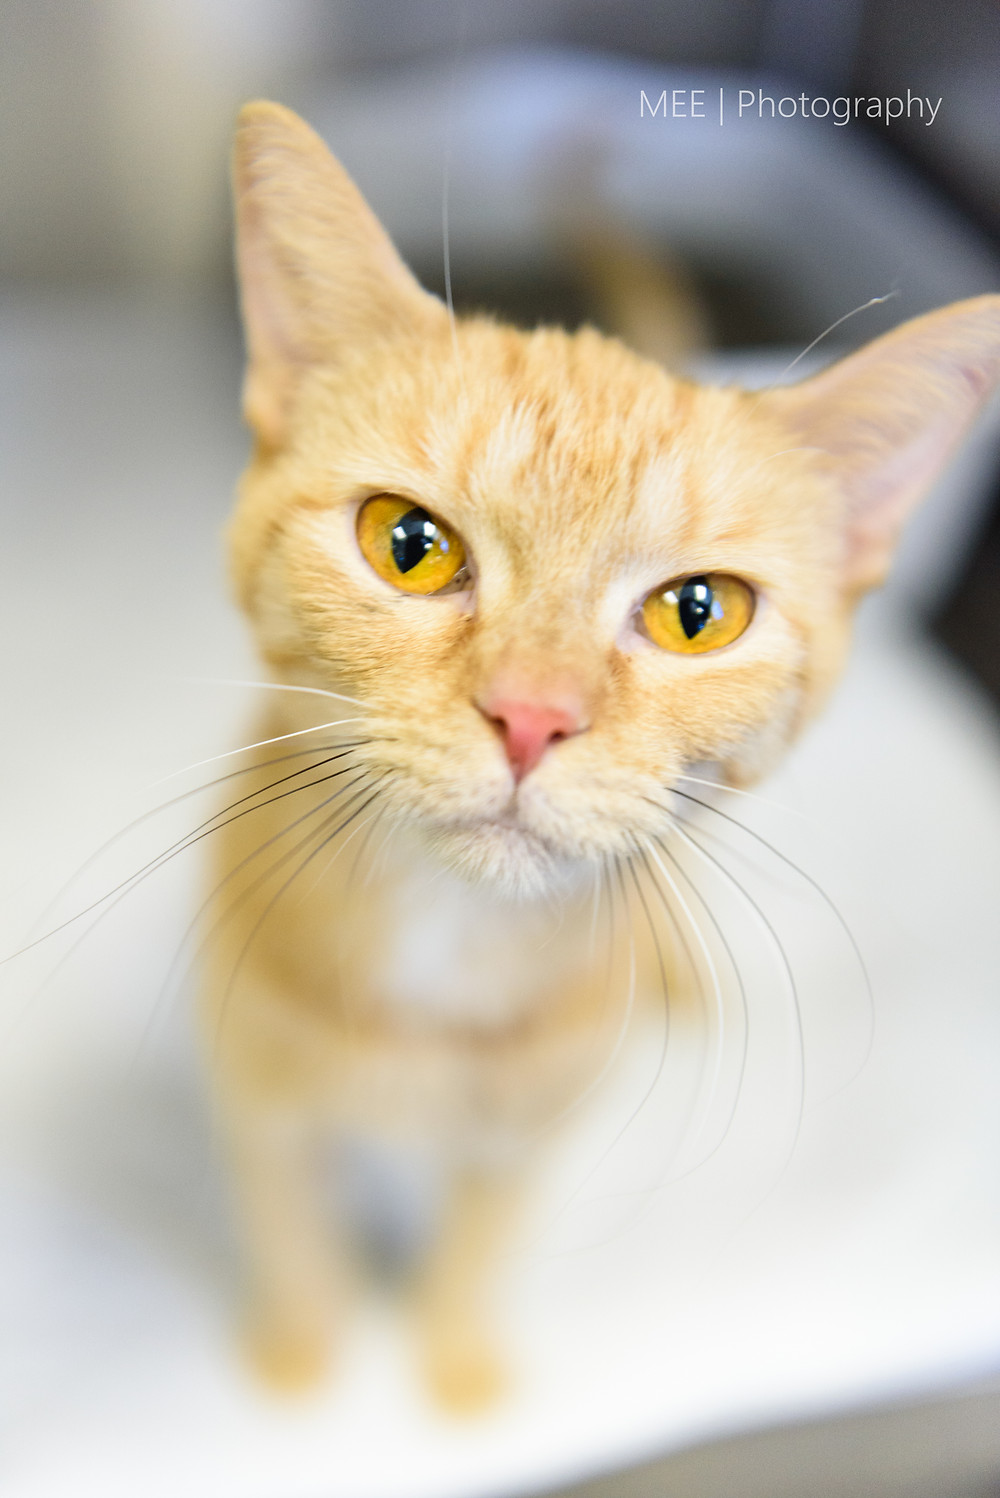 A sweet tabby cat with gorgeous gold eyes and an orange coat available for adoption at the Hancock County Animal Shelter.